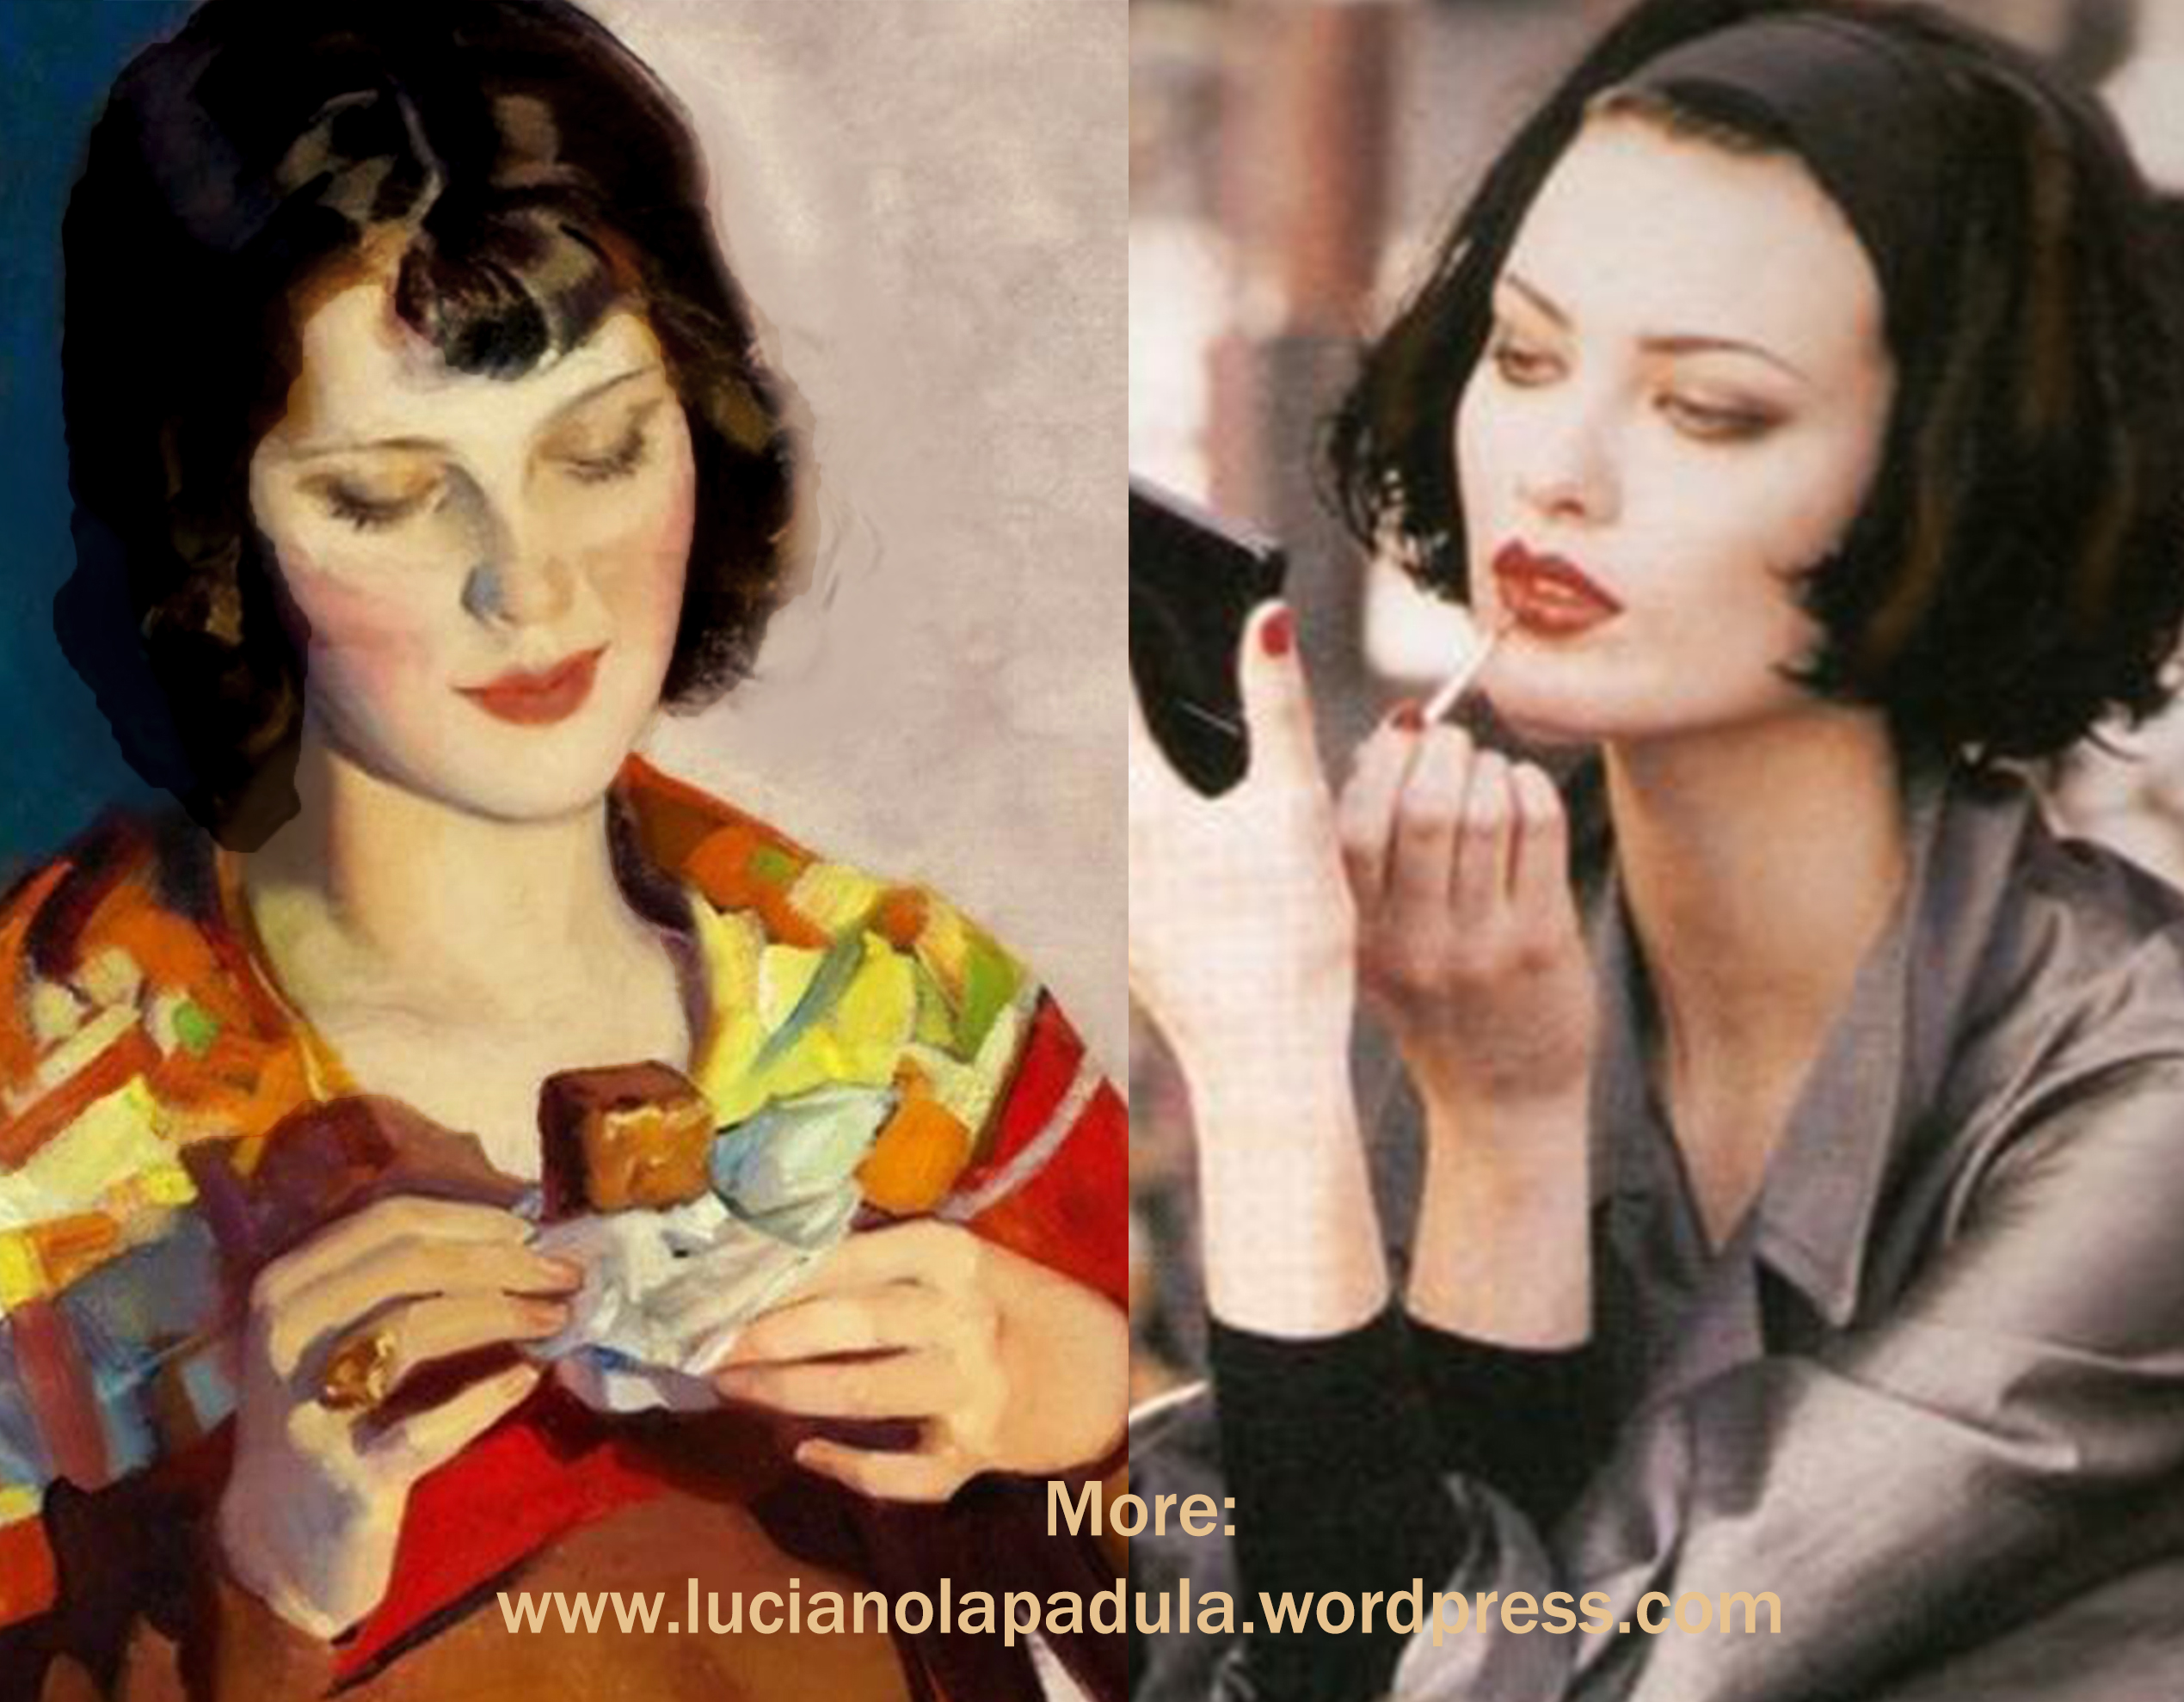 andrew loomis supermodel 90s 40s hairstyle makeup art blog fashion museum storia luciano lapadula moda yves saint laurent ss summer 1996 90er shalom harlow top